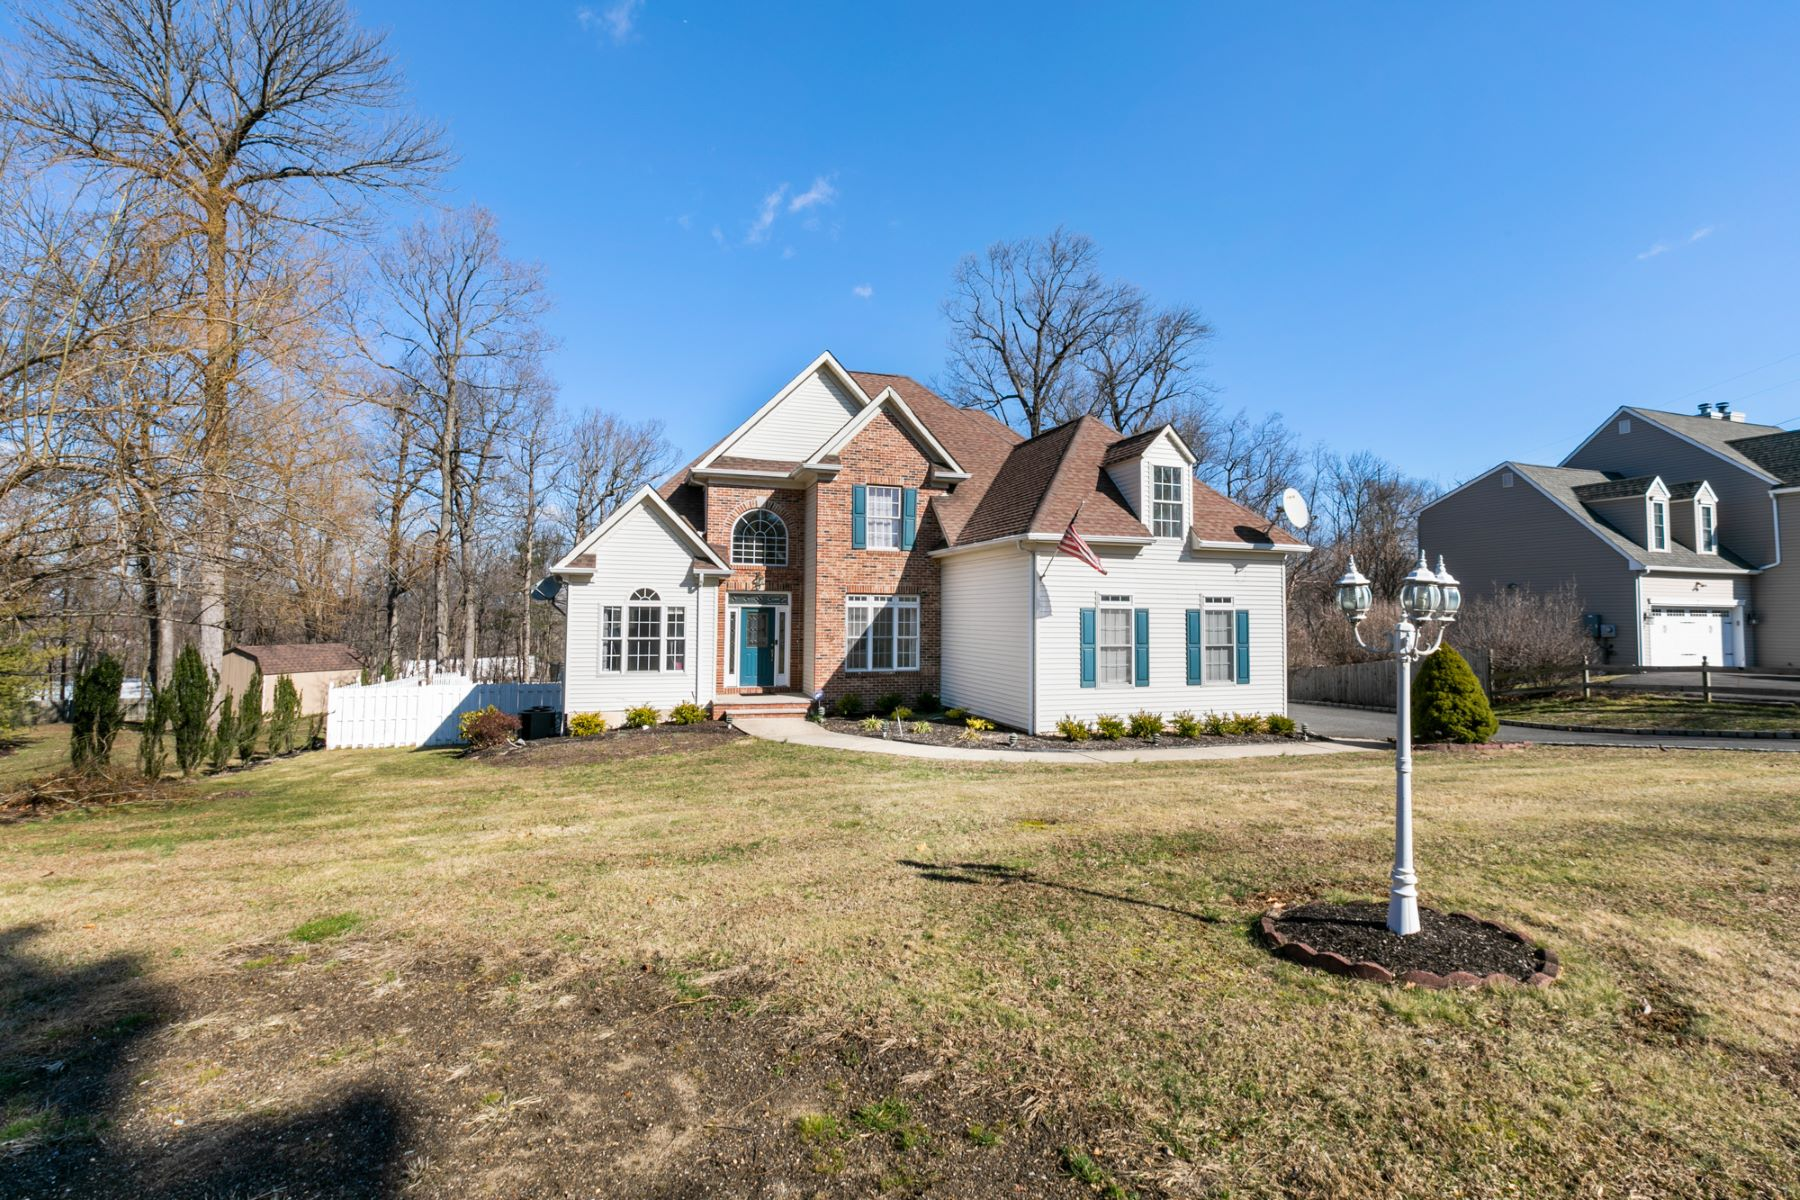 Single Family Homes for Sale at Elegant Center Hall Colonial 19 Highmount Avenue Warren, New Jersey 07059 United States